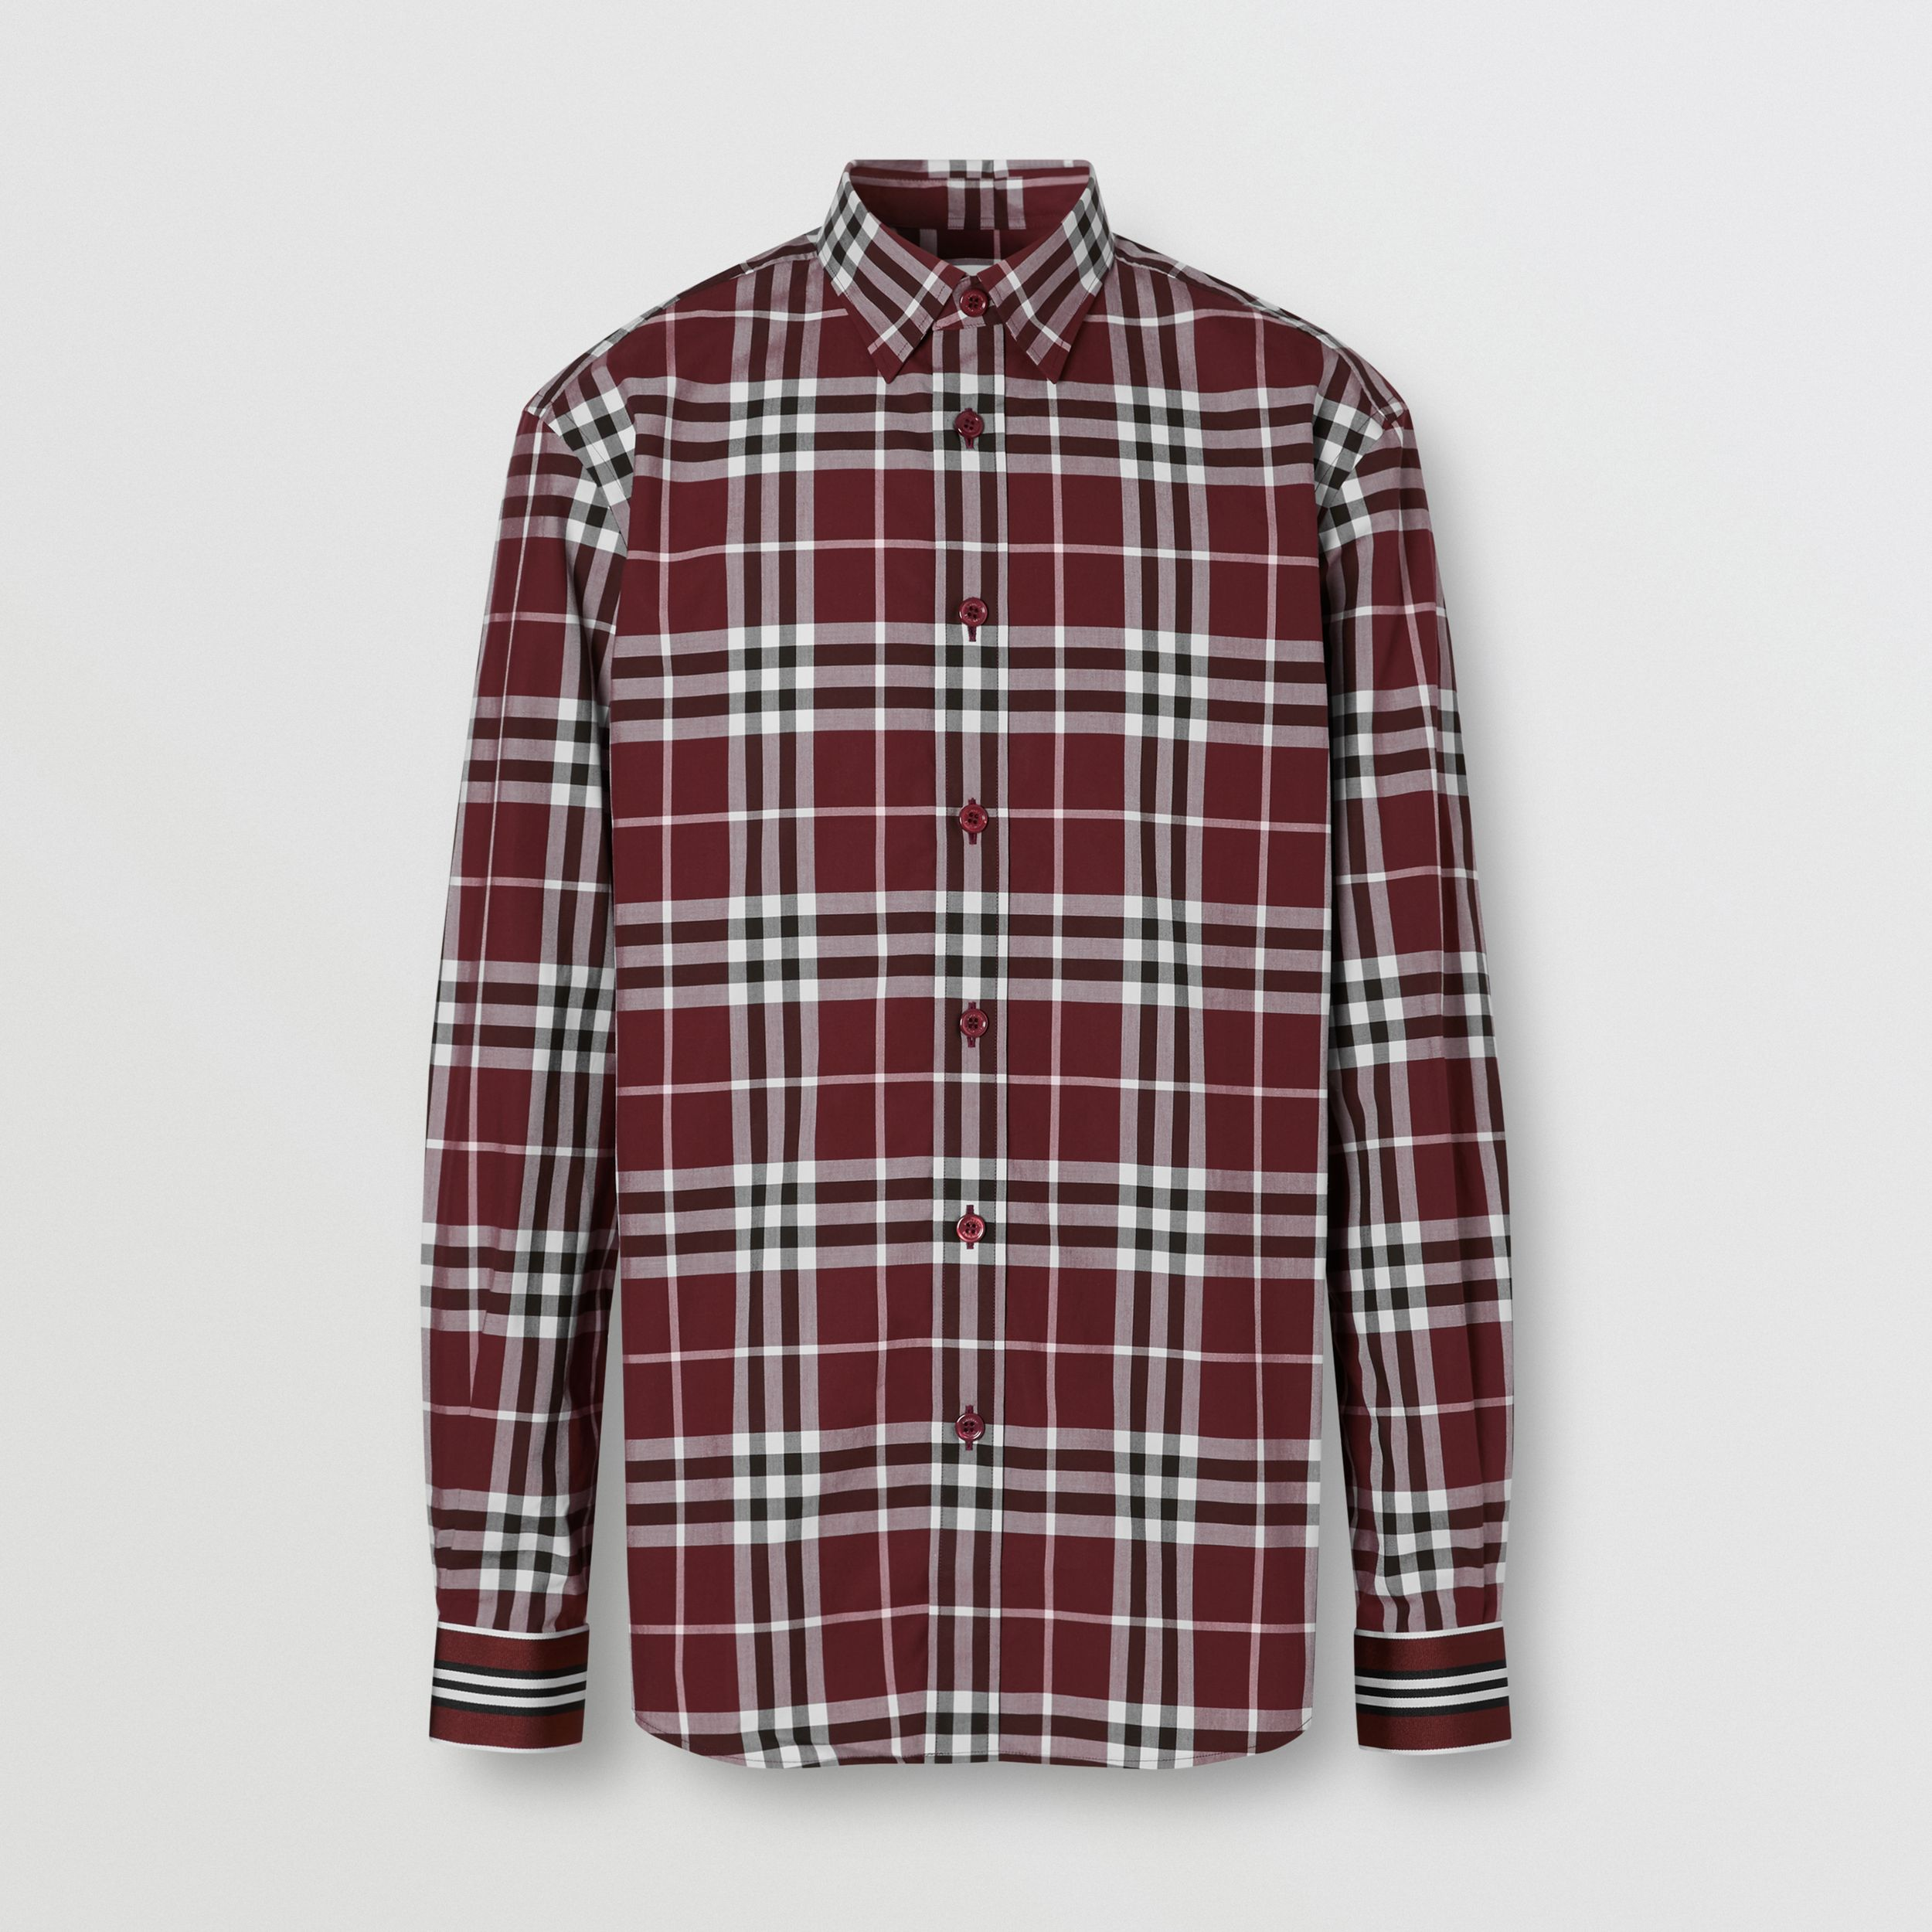 Stripe Cuff Check Cotton Shirt in Burgundy Red - Men | Burberry - 4